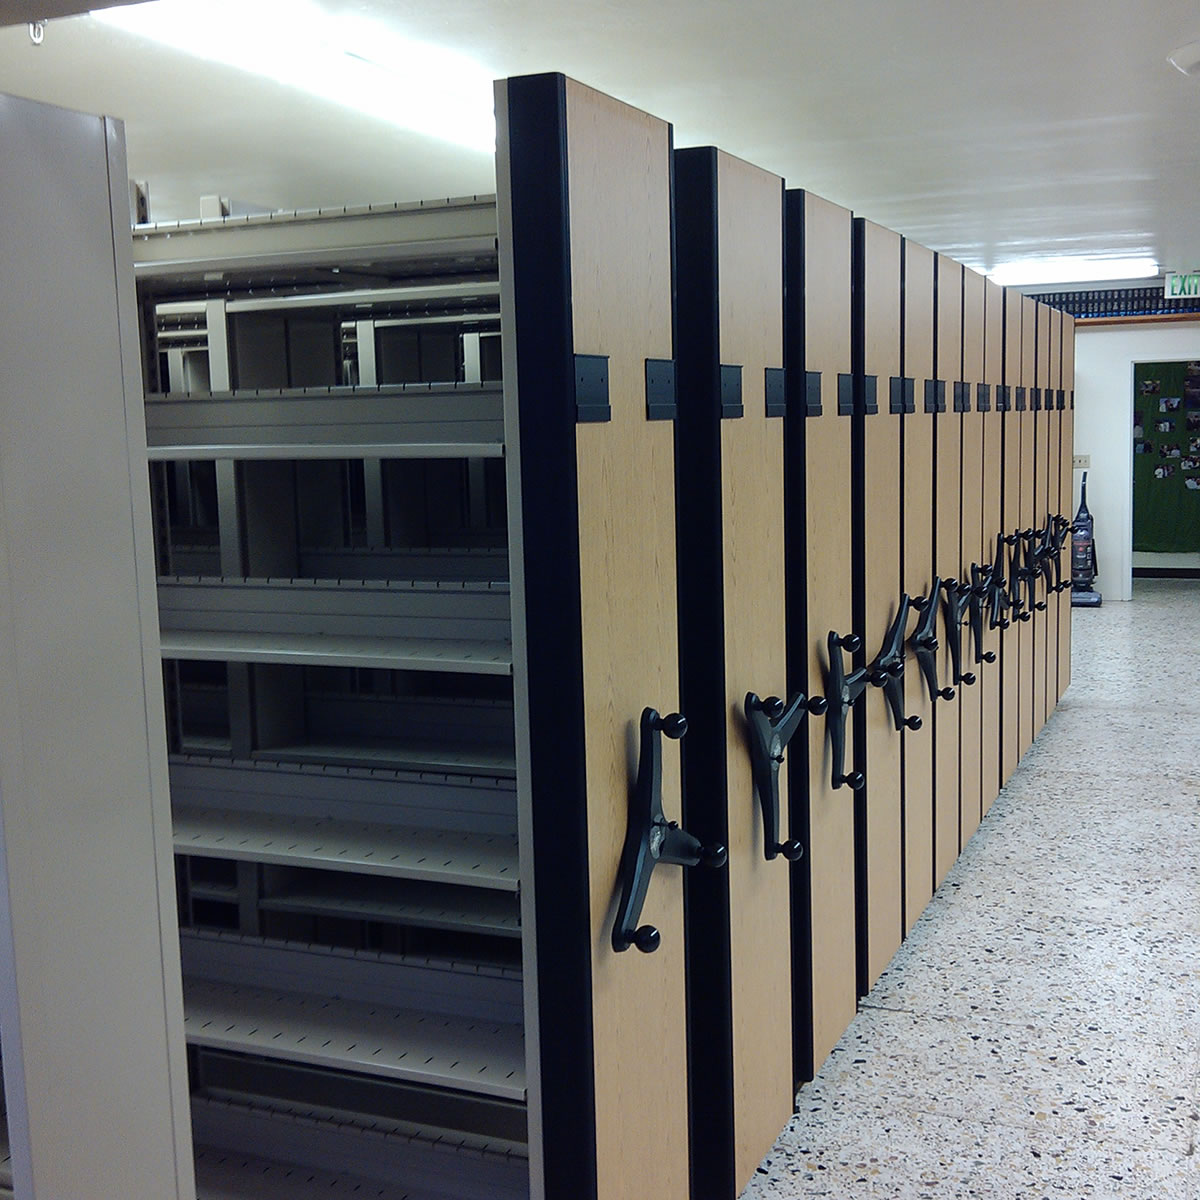 office shelving systems. Square-High-Density-Mobile-File-Shelving-System Office Shelving Systems I